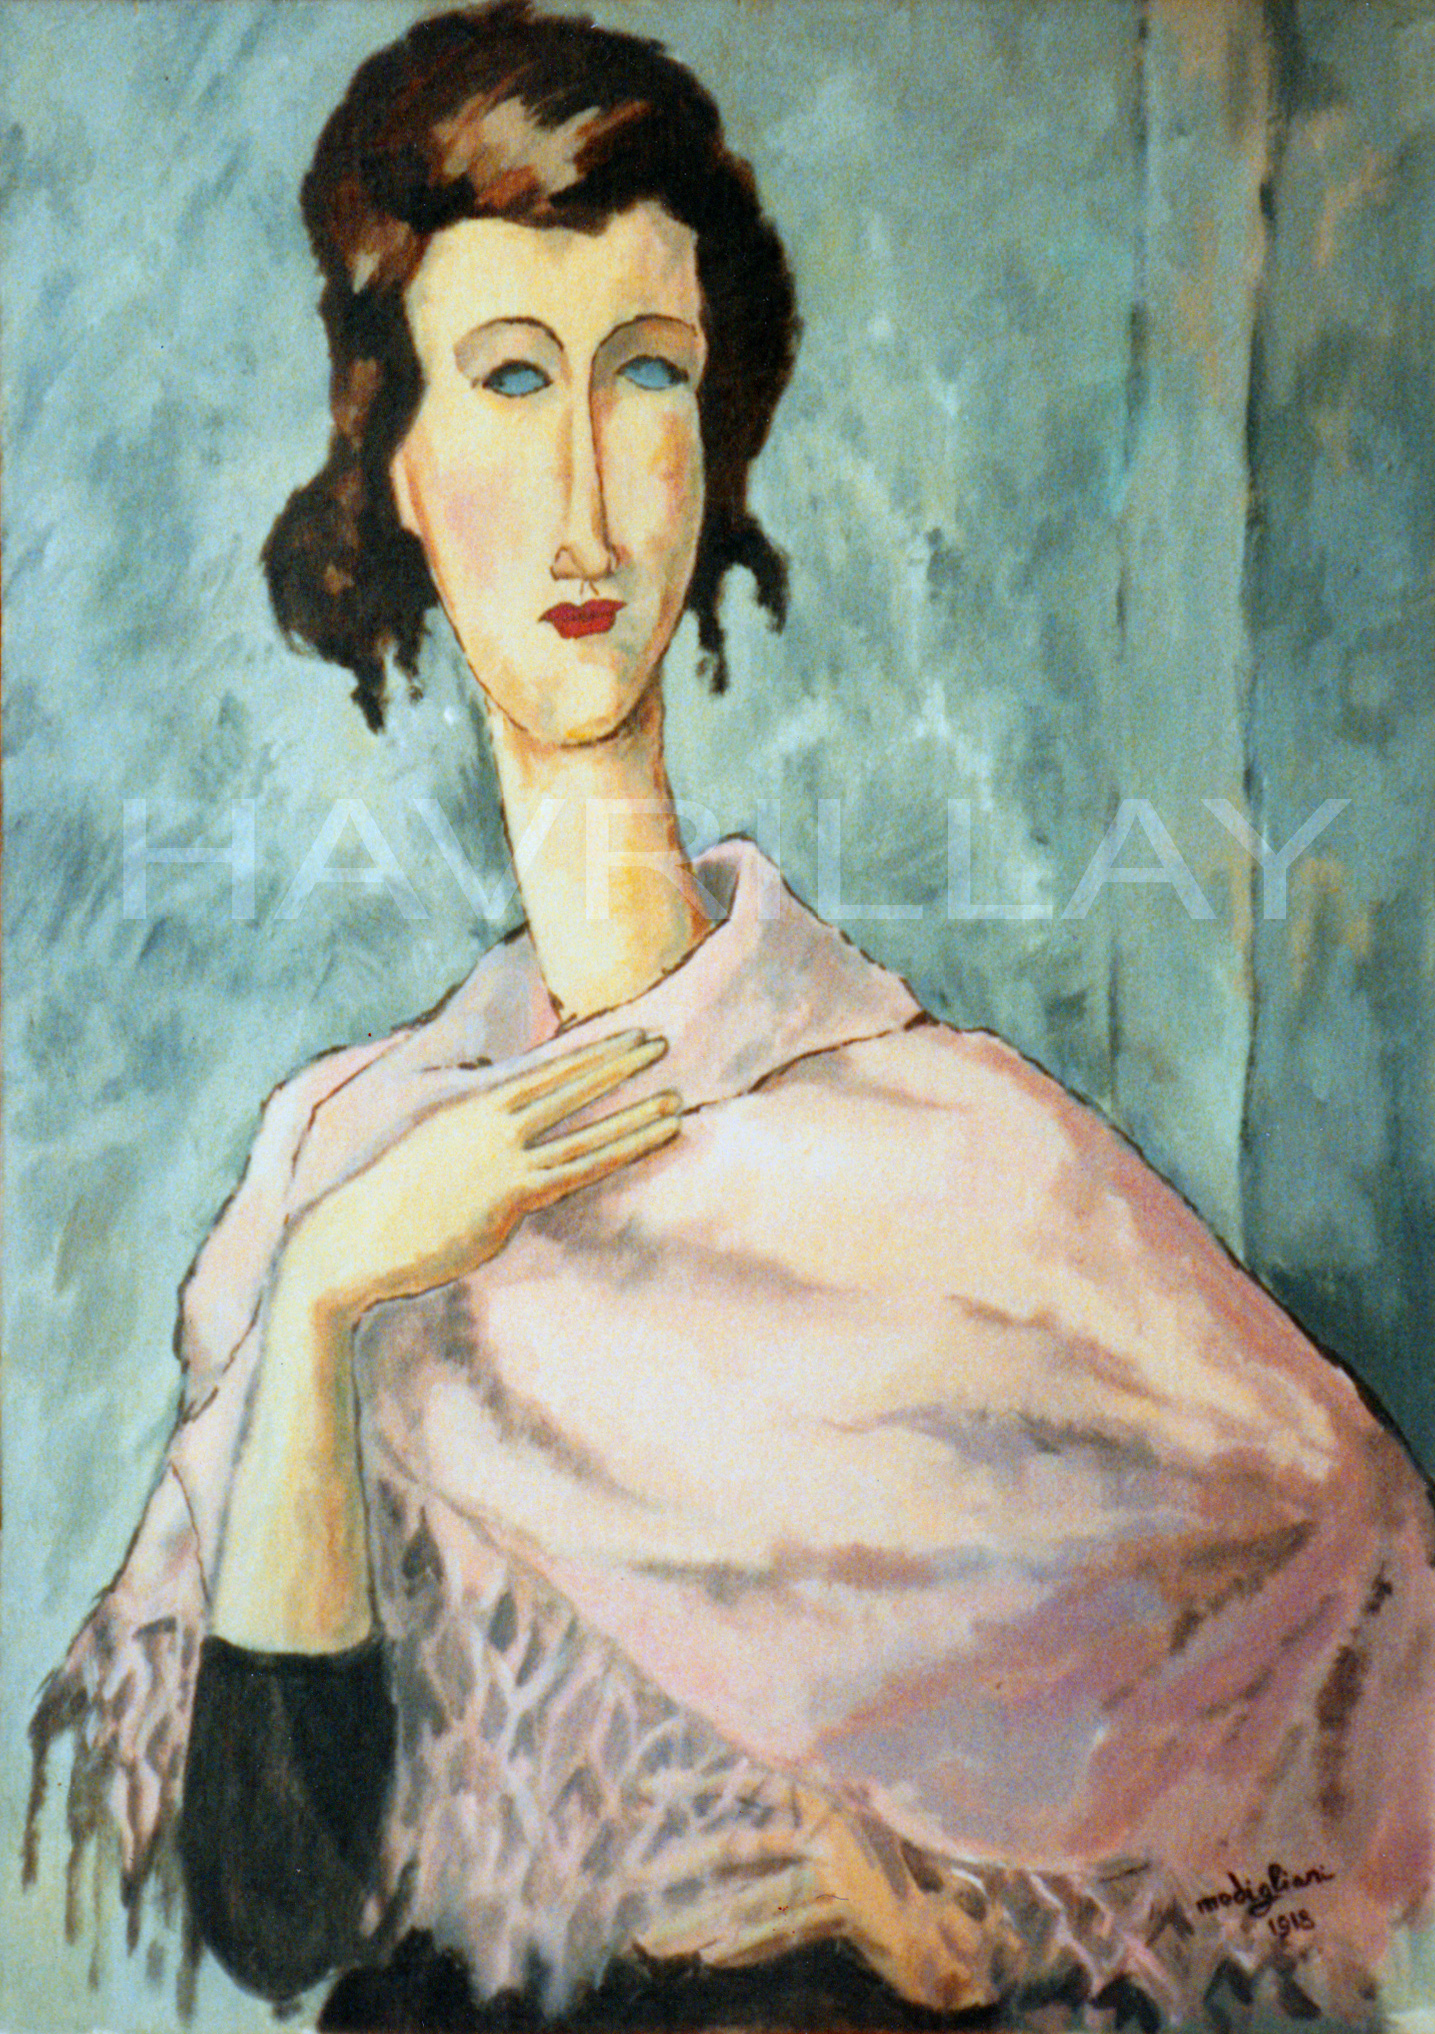 In the style of Modigliani - Painting by George Havrillay